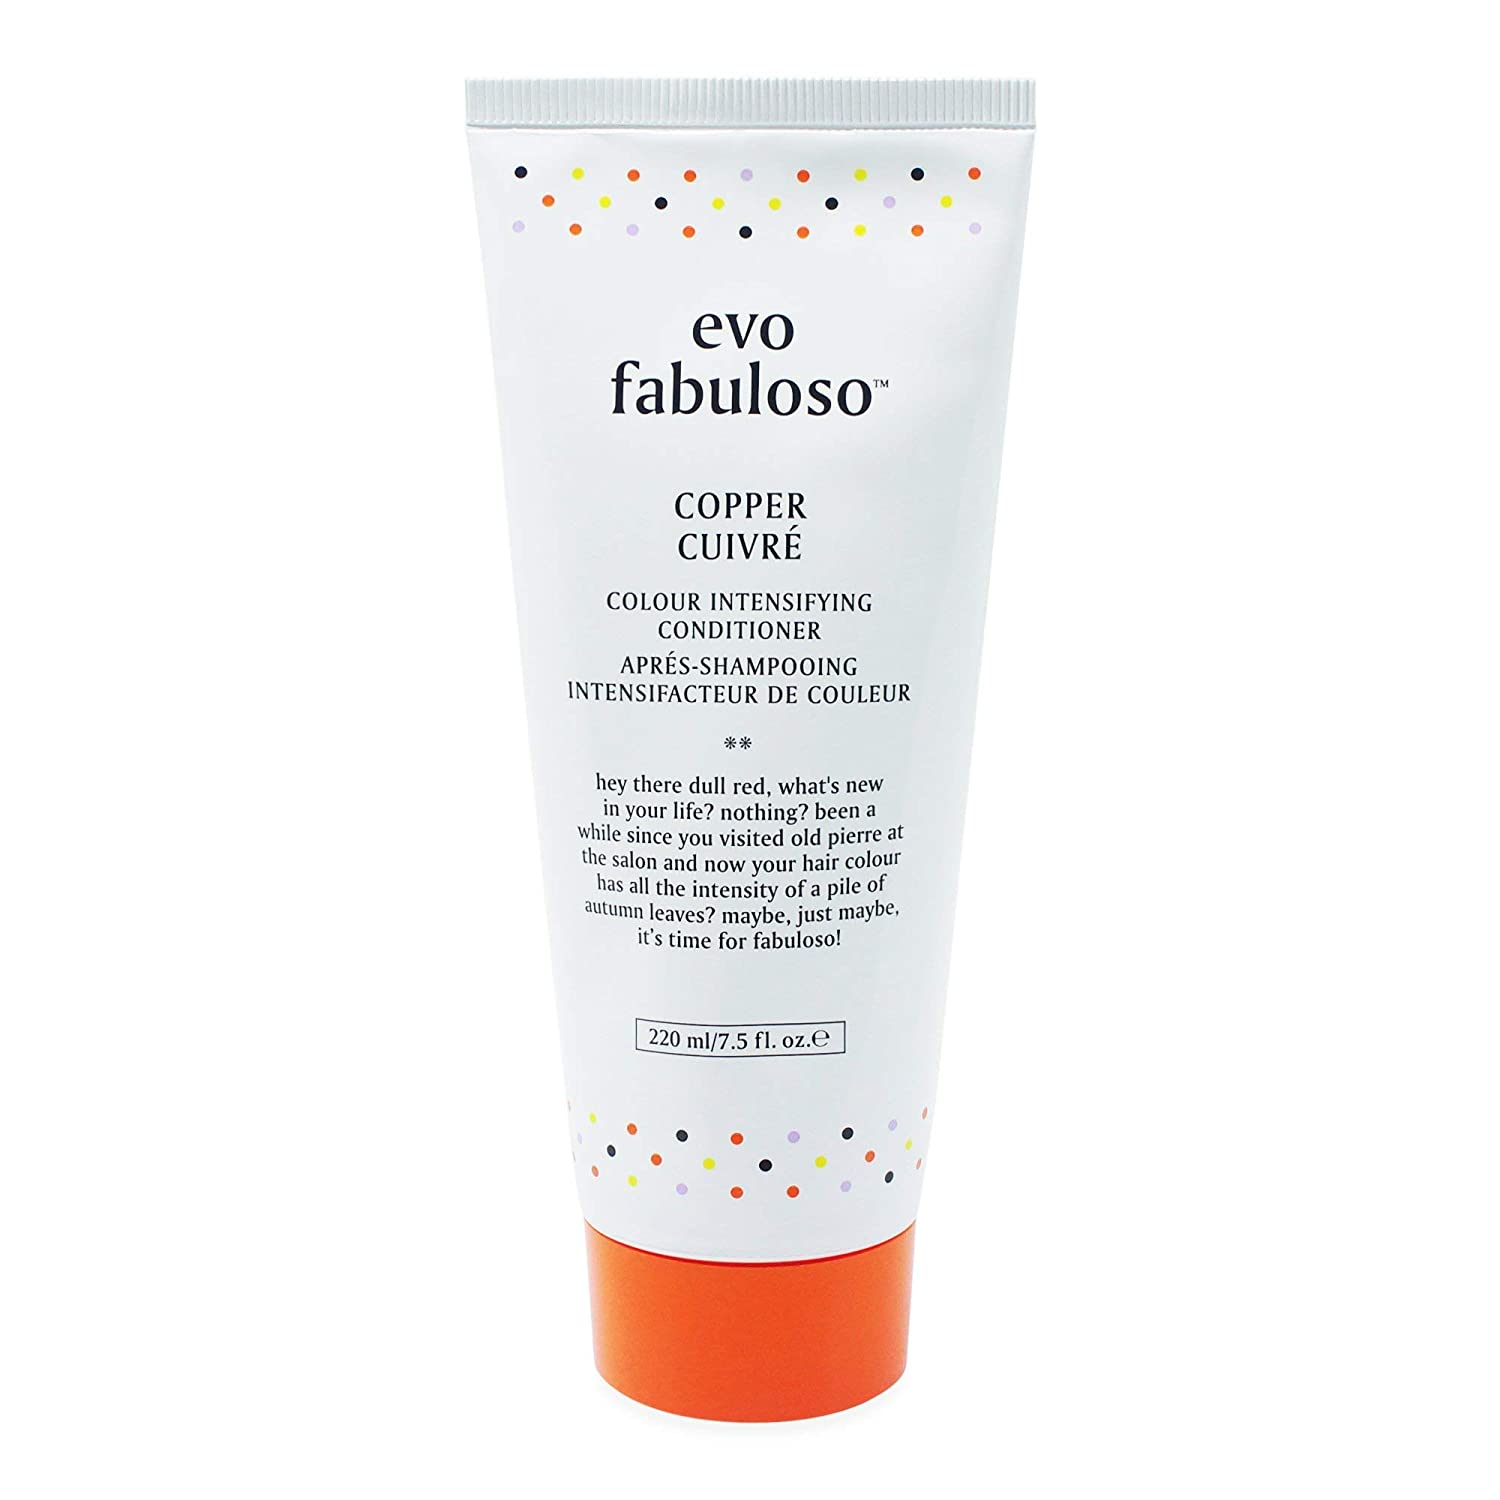 Evo Fabuloso Copper Cuivre Colour Intensifying Conditioner - 8.5 oz